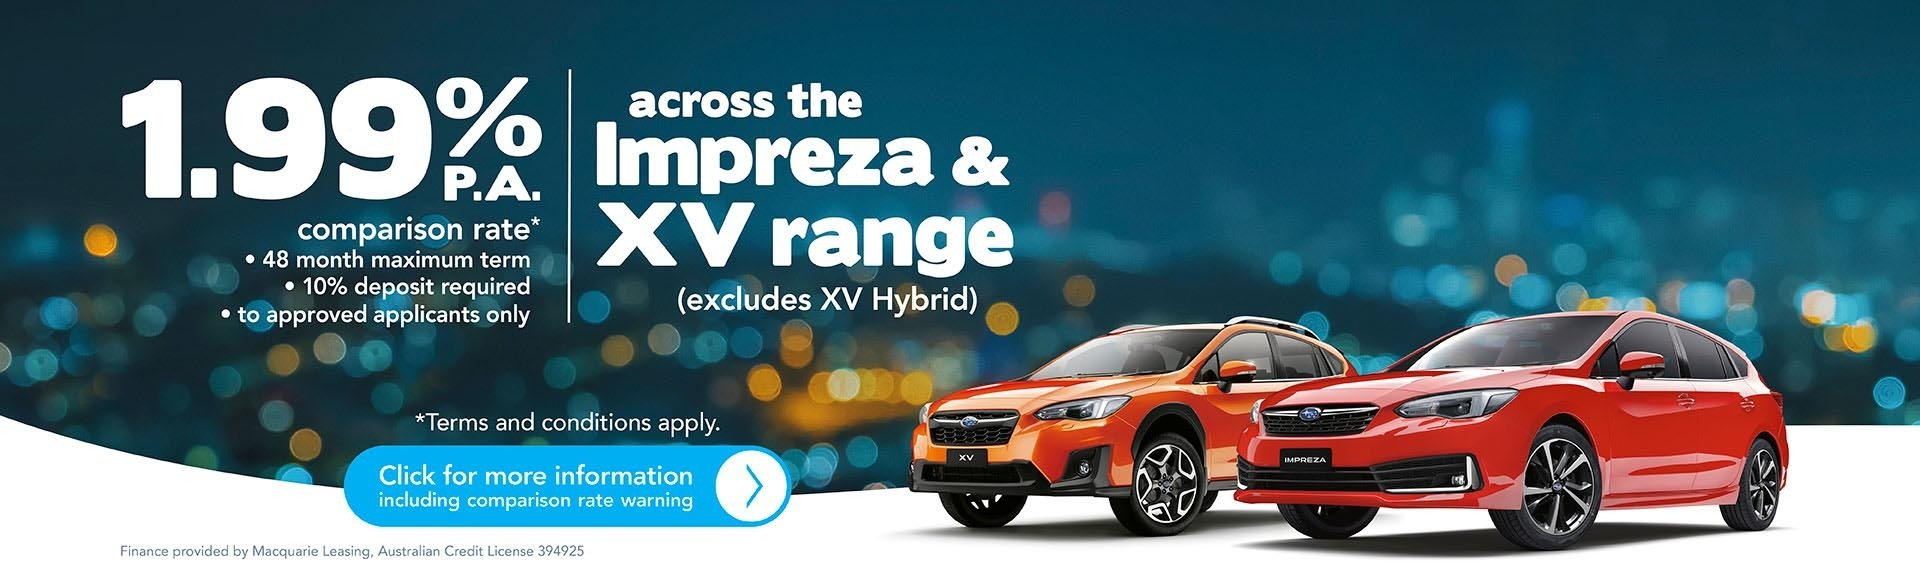 Subaru Narellan - Impreza & XV Range Finance Offer